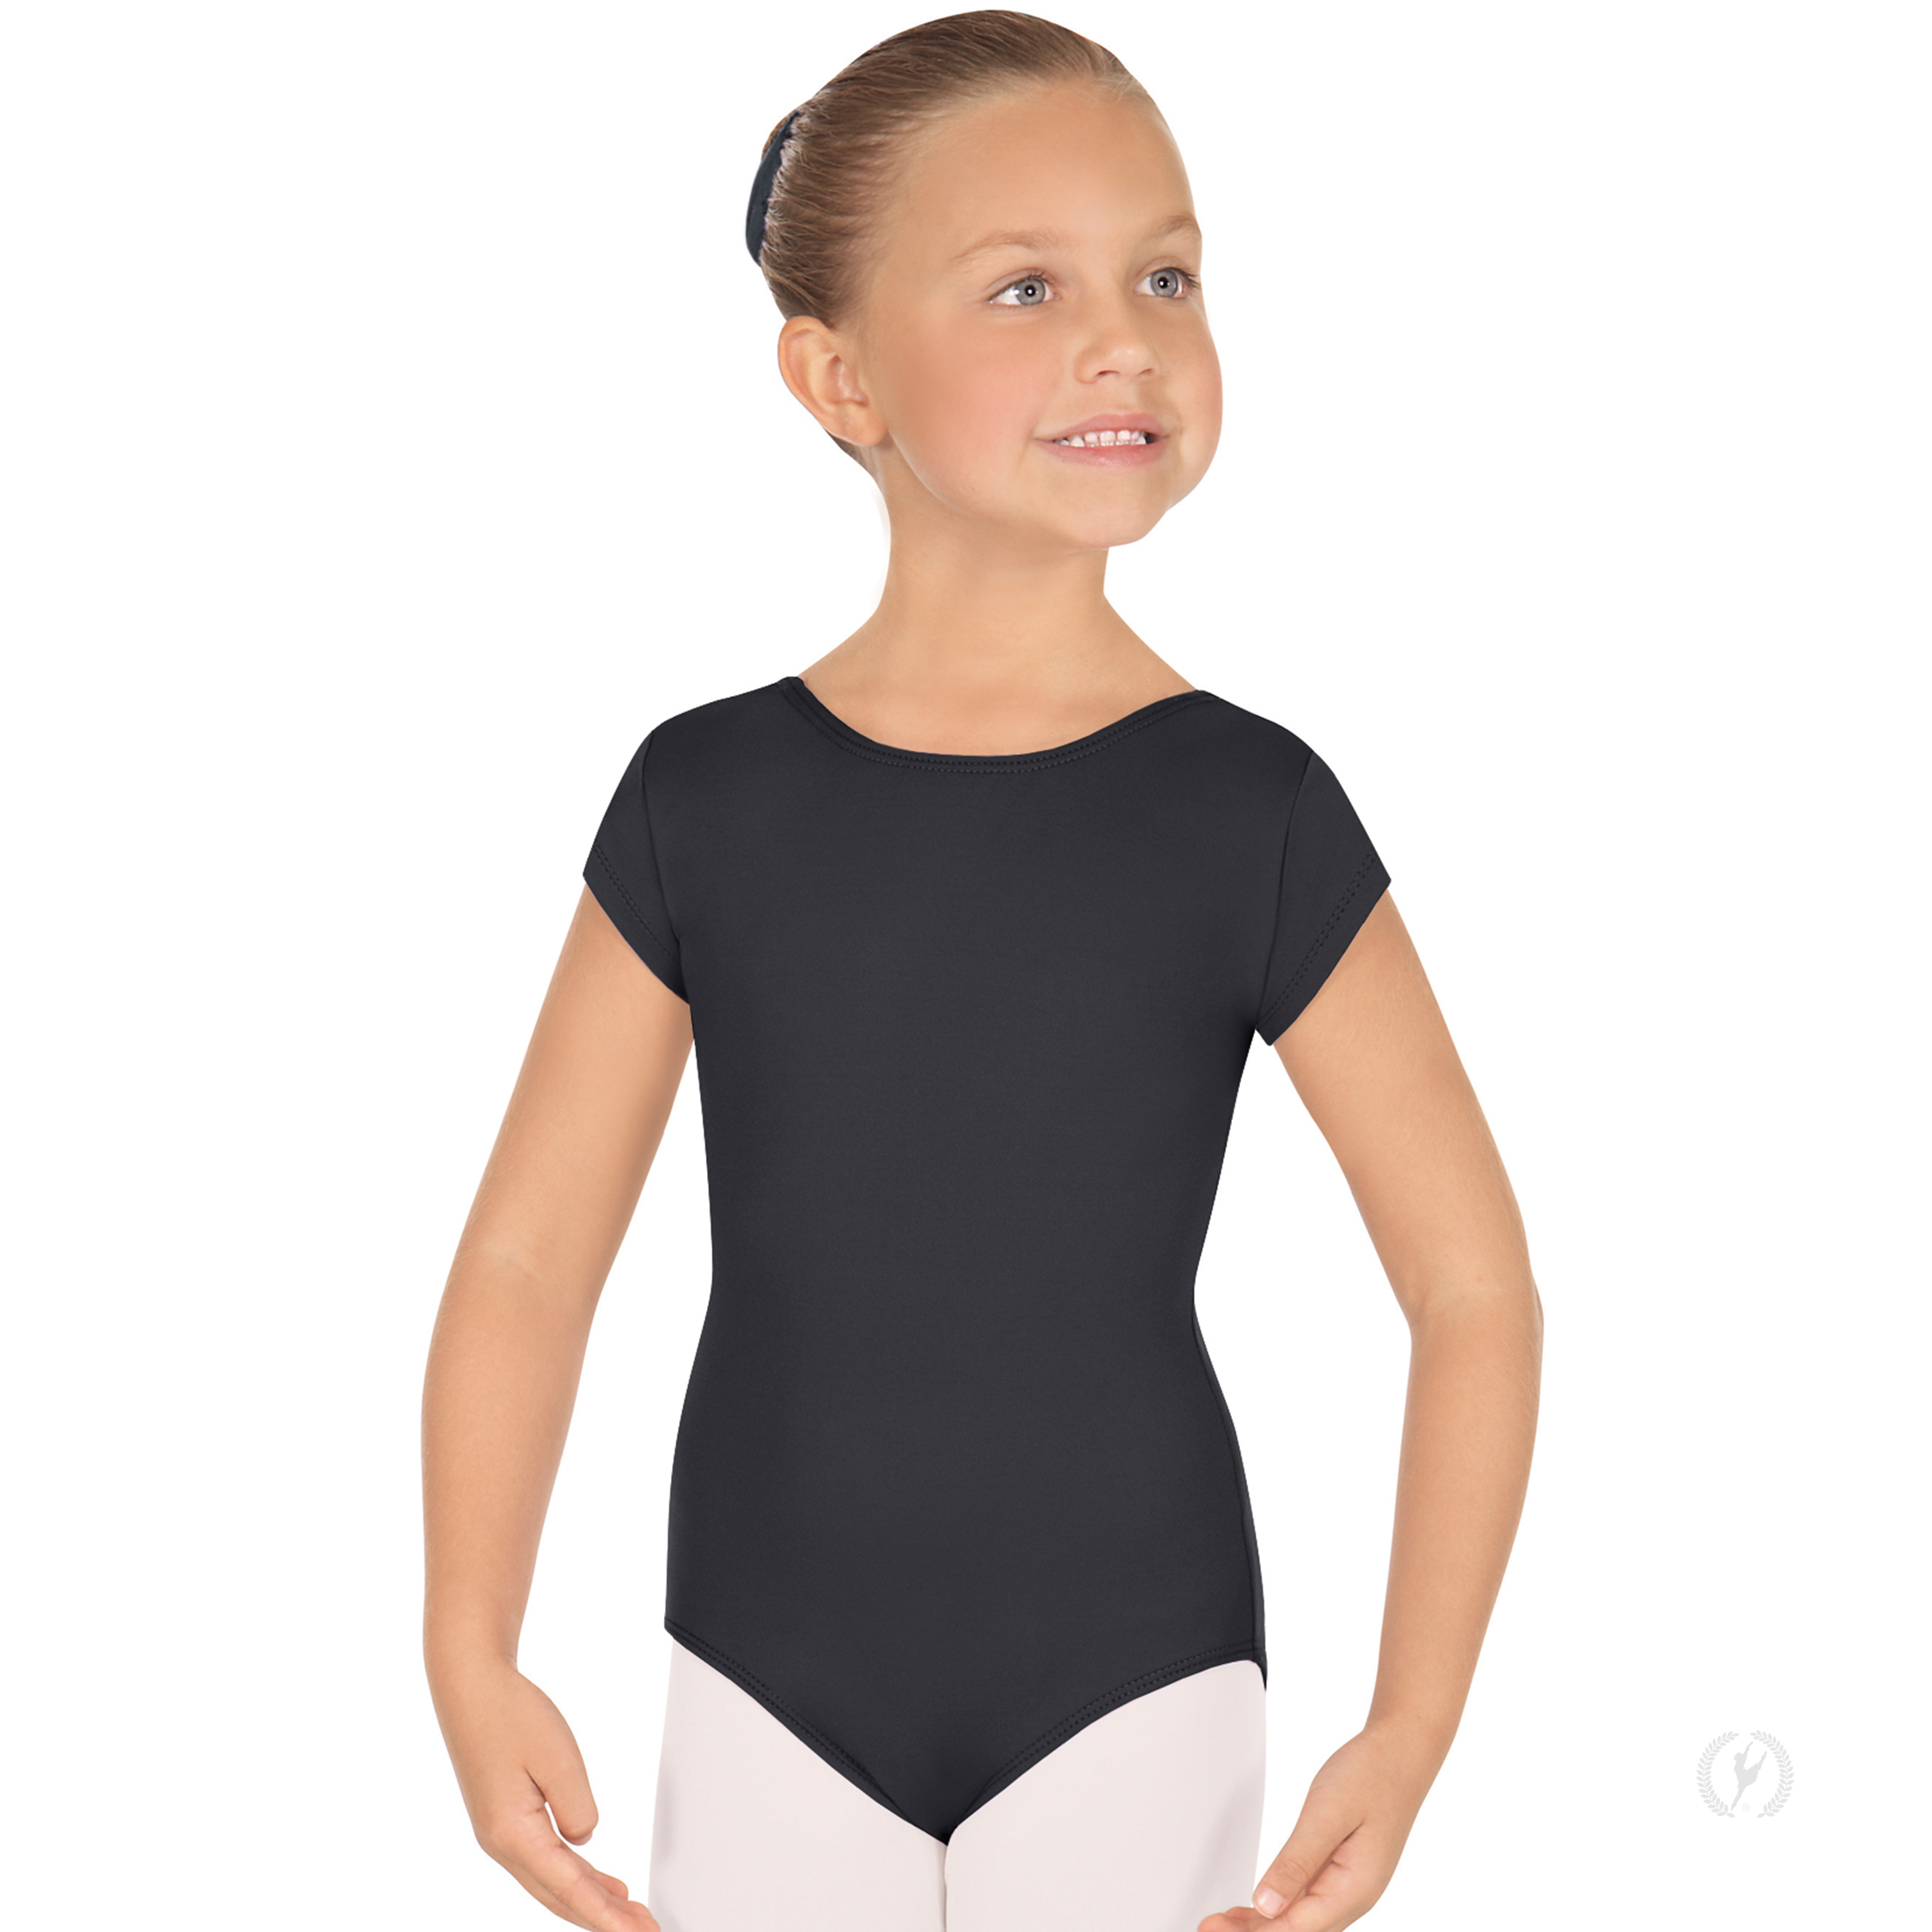 ... Lace Ballet Leotard - Style No N7640C. Loading  clearance prices e1b17  55ea0 ... Girls Short Sleeve Leotard with Tactel® Microfiber. ... df9d6d775